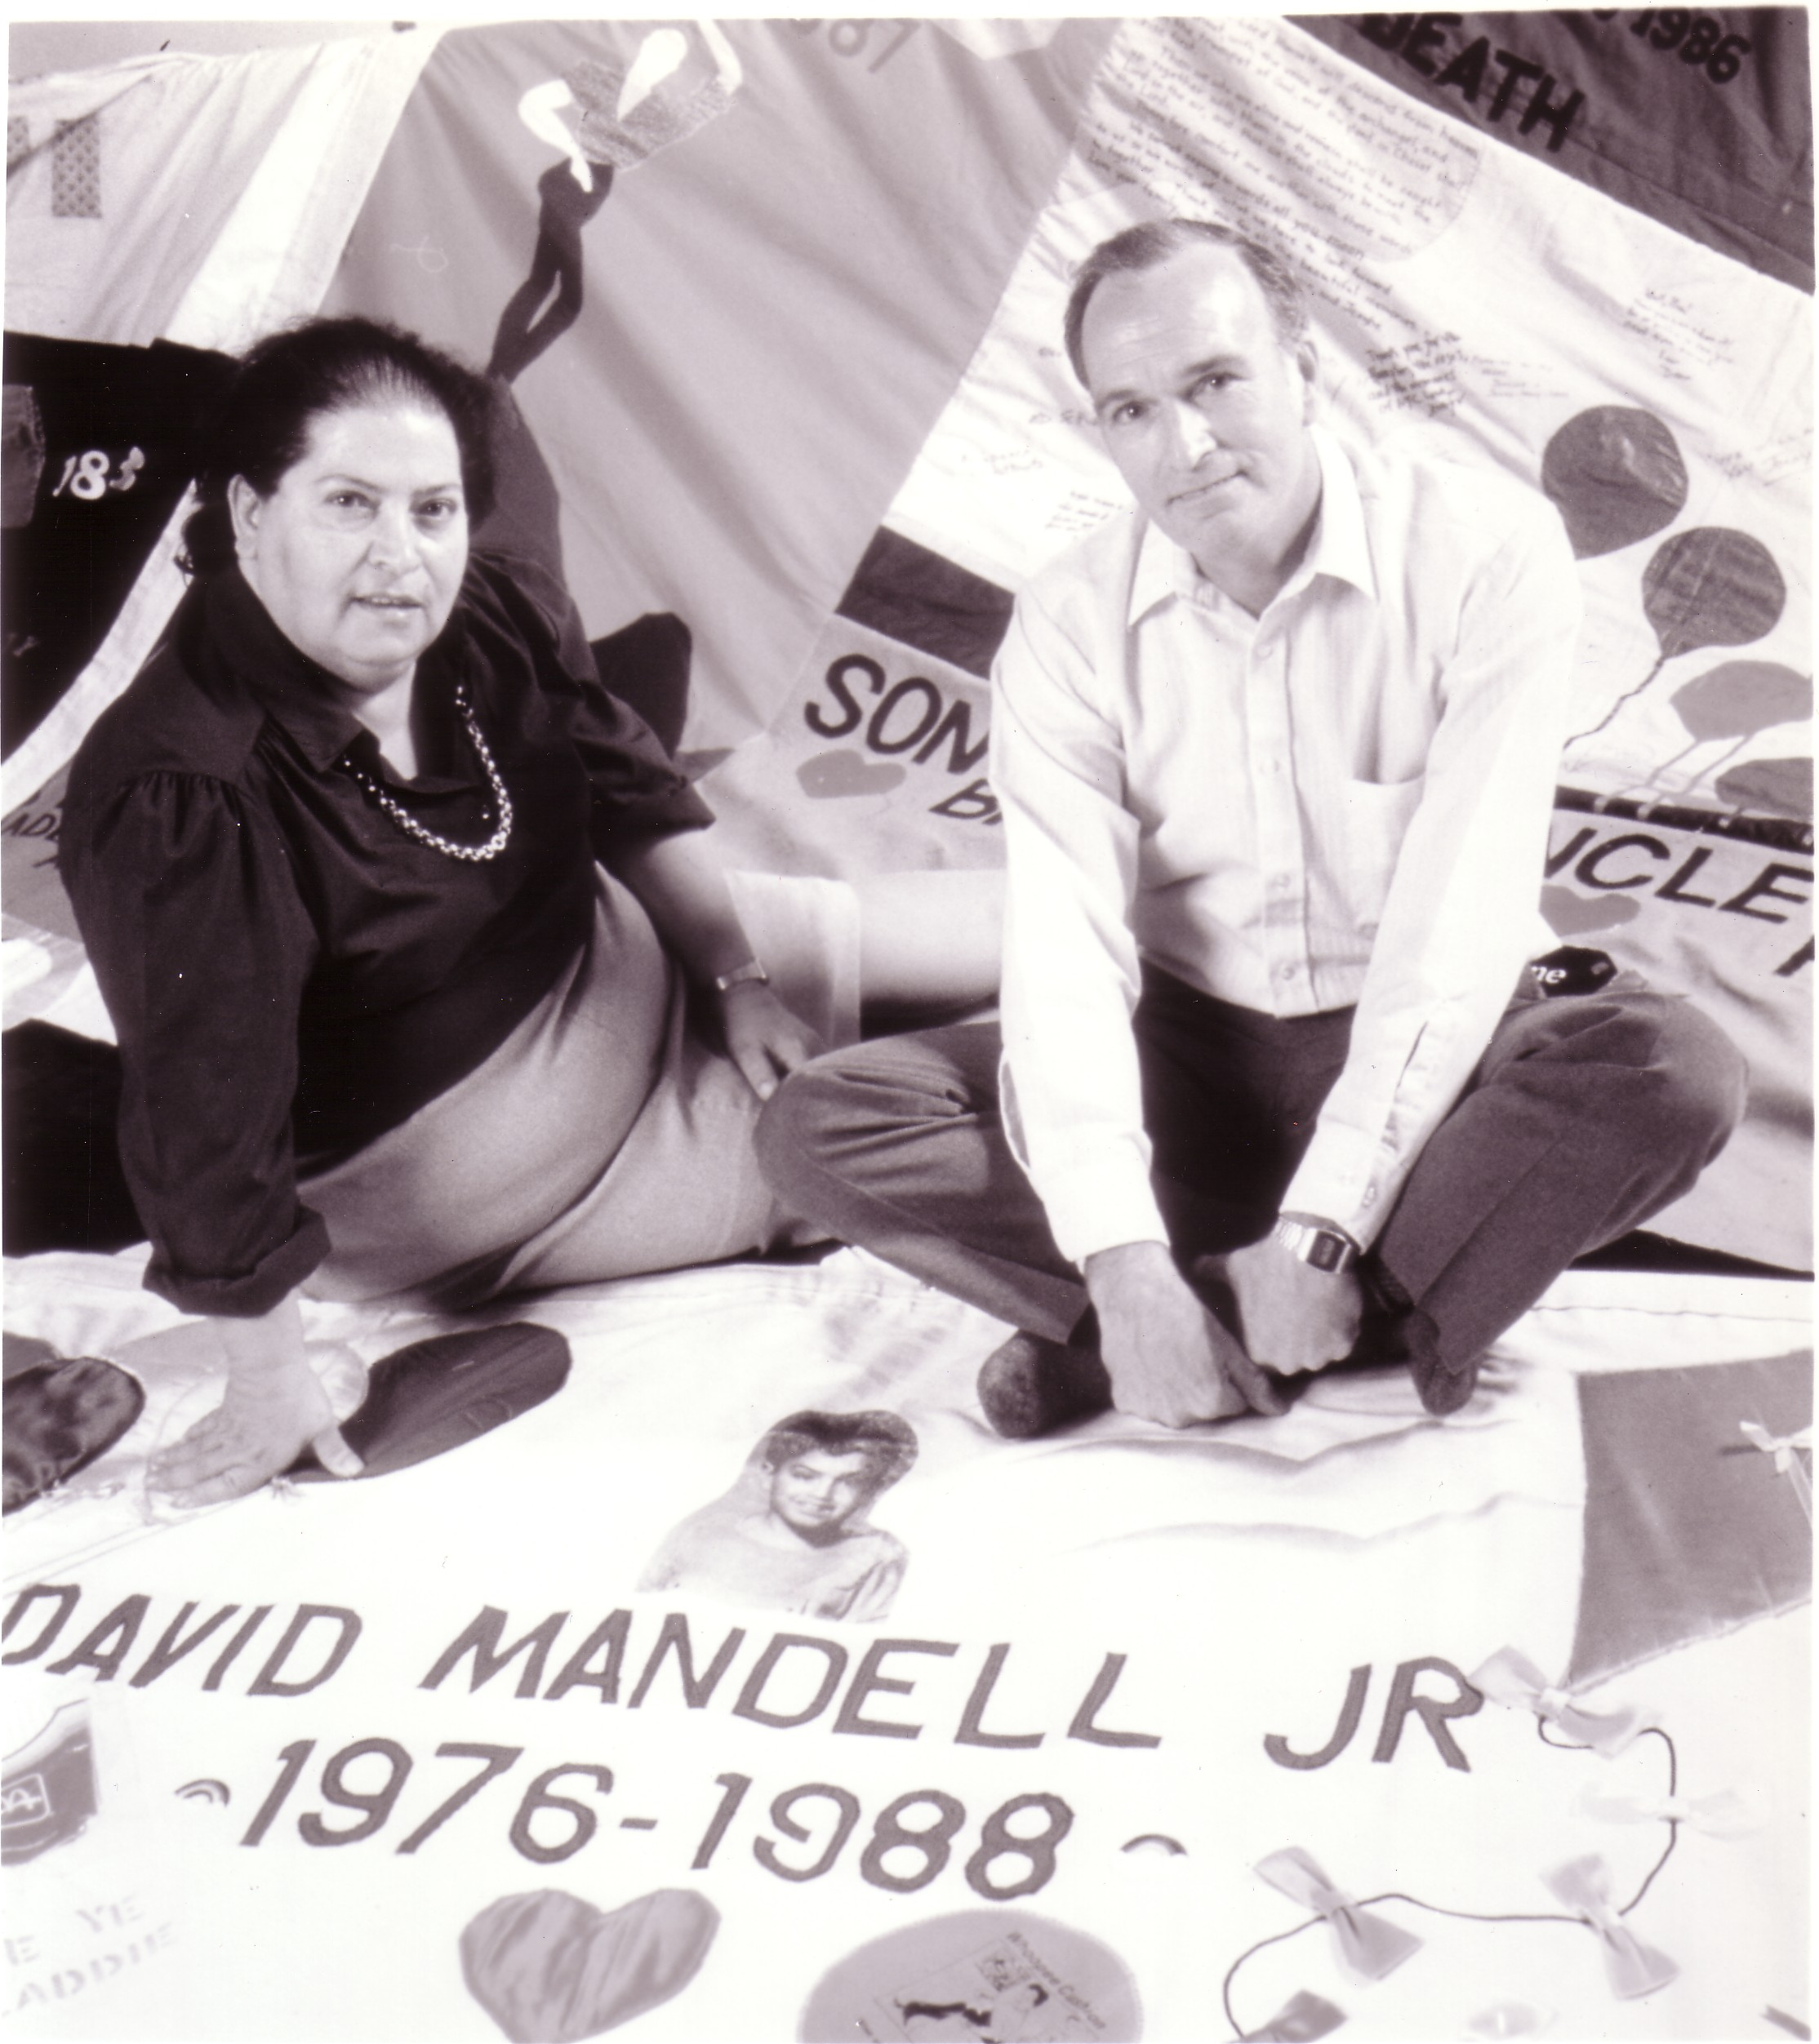 4.  Suzi and David Mandel and the panel they made for their .jpg